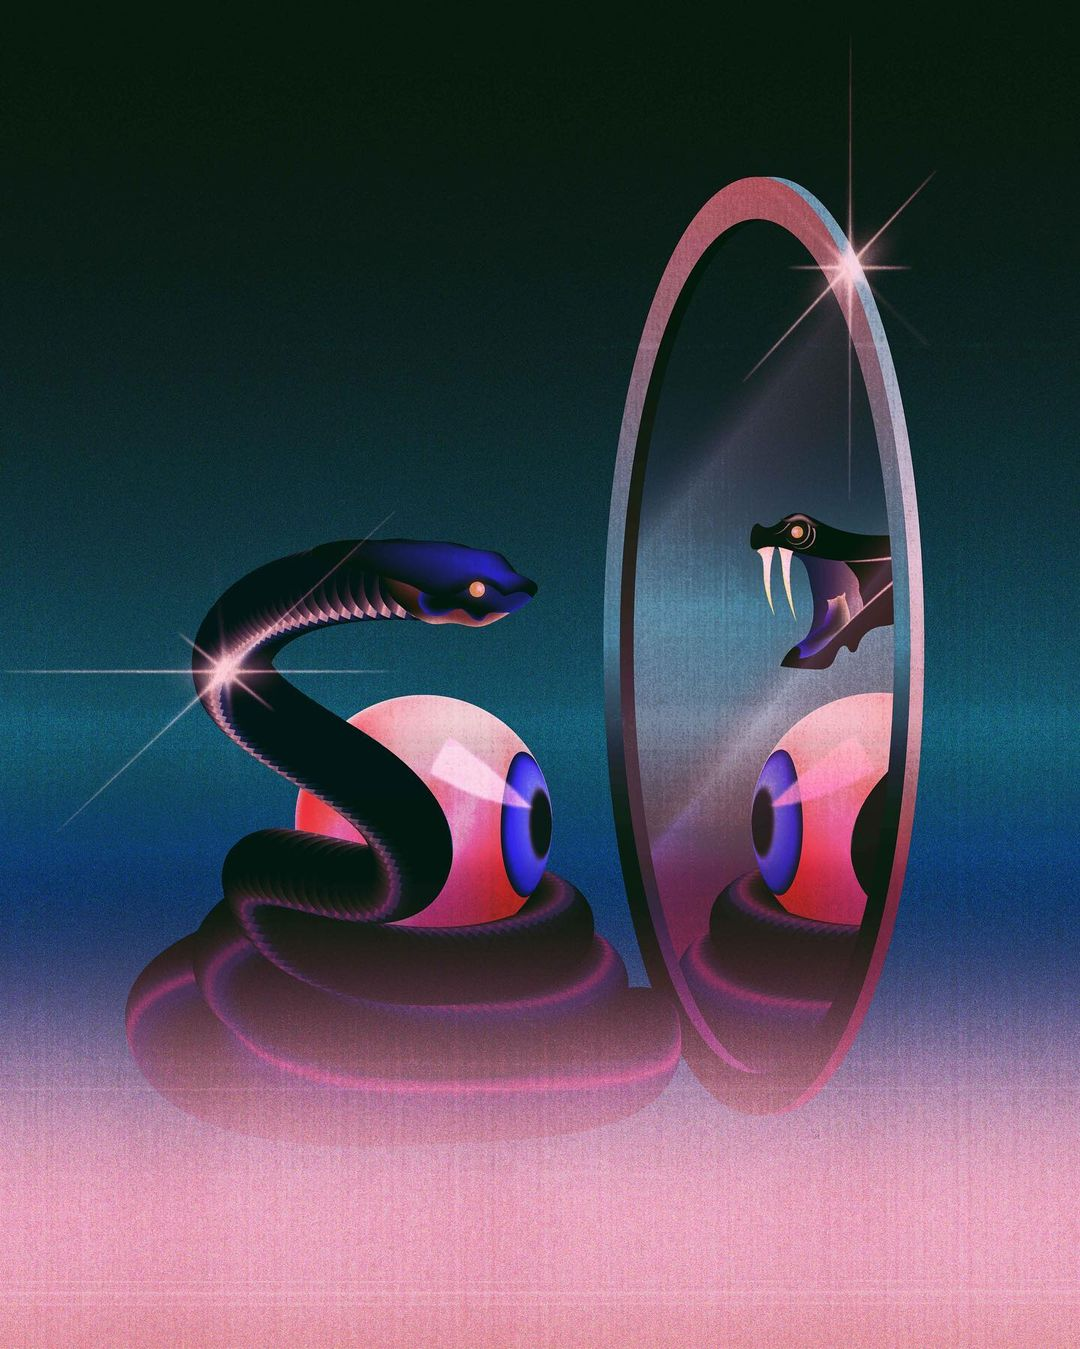 Paulina Almira's Digital Explorations of the Surreal & Ethereal 17